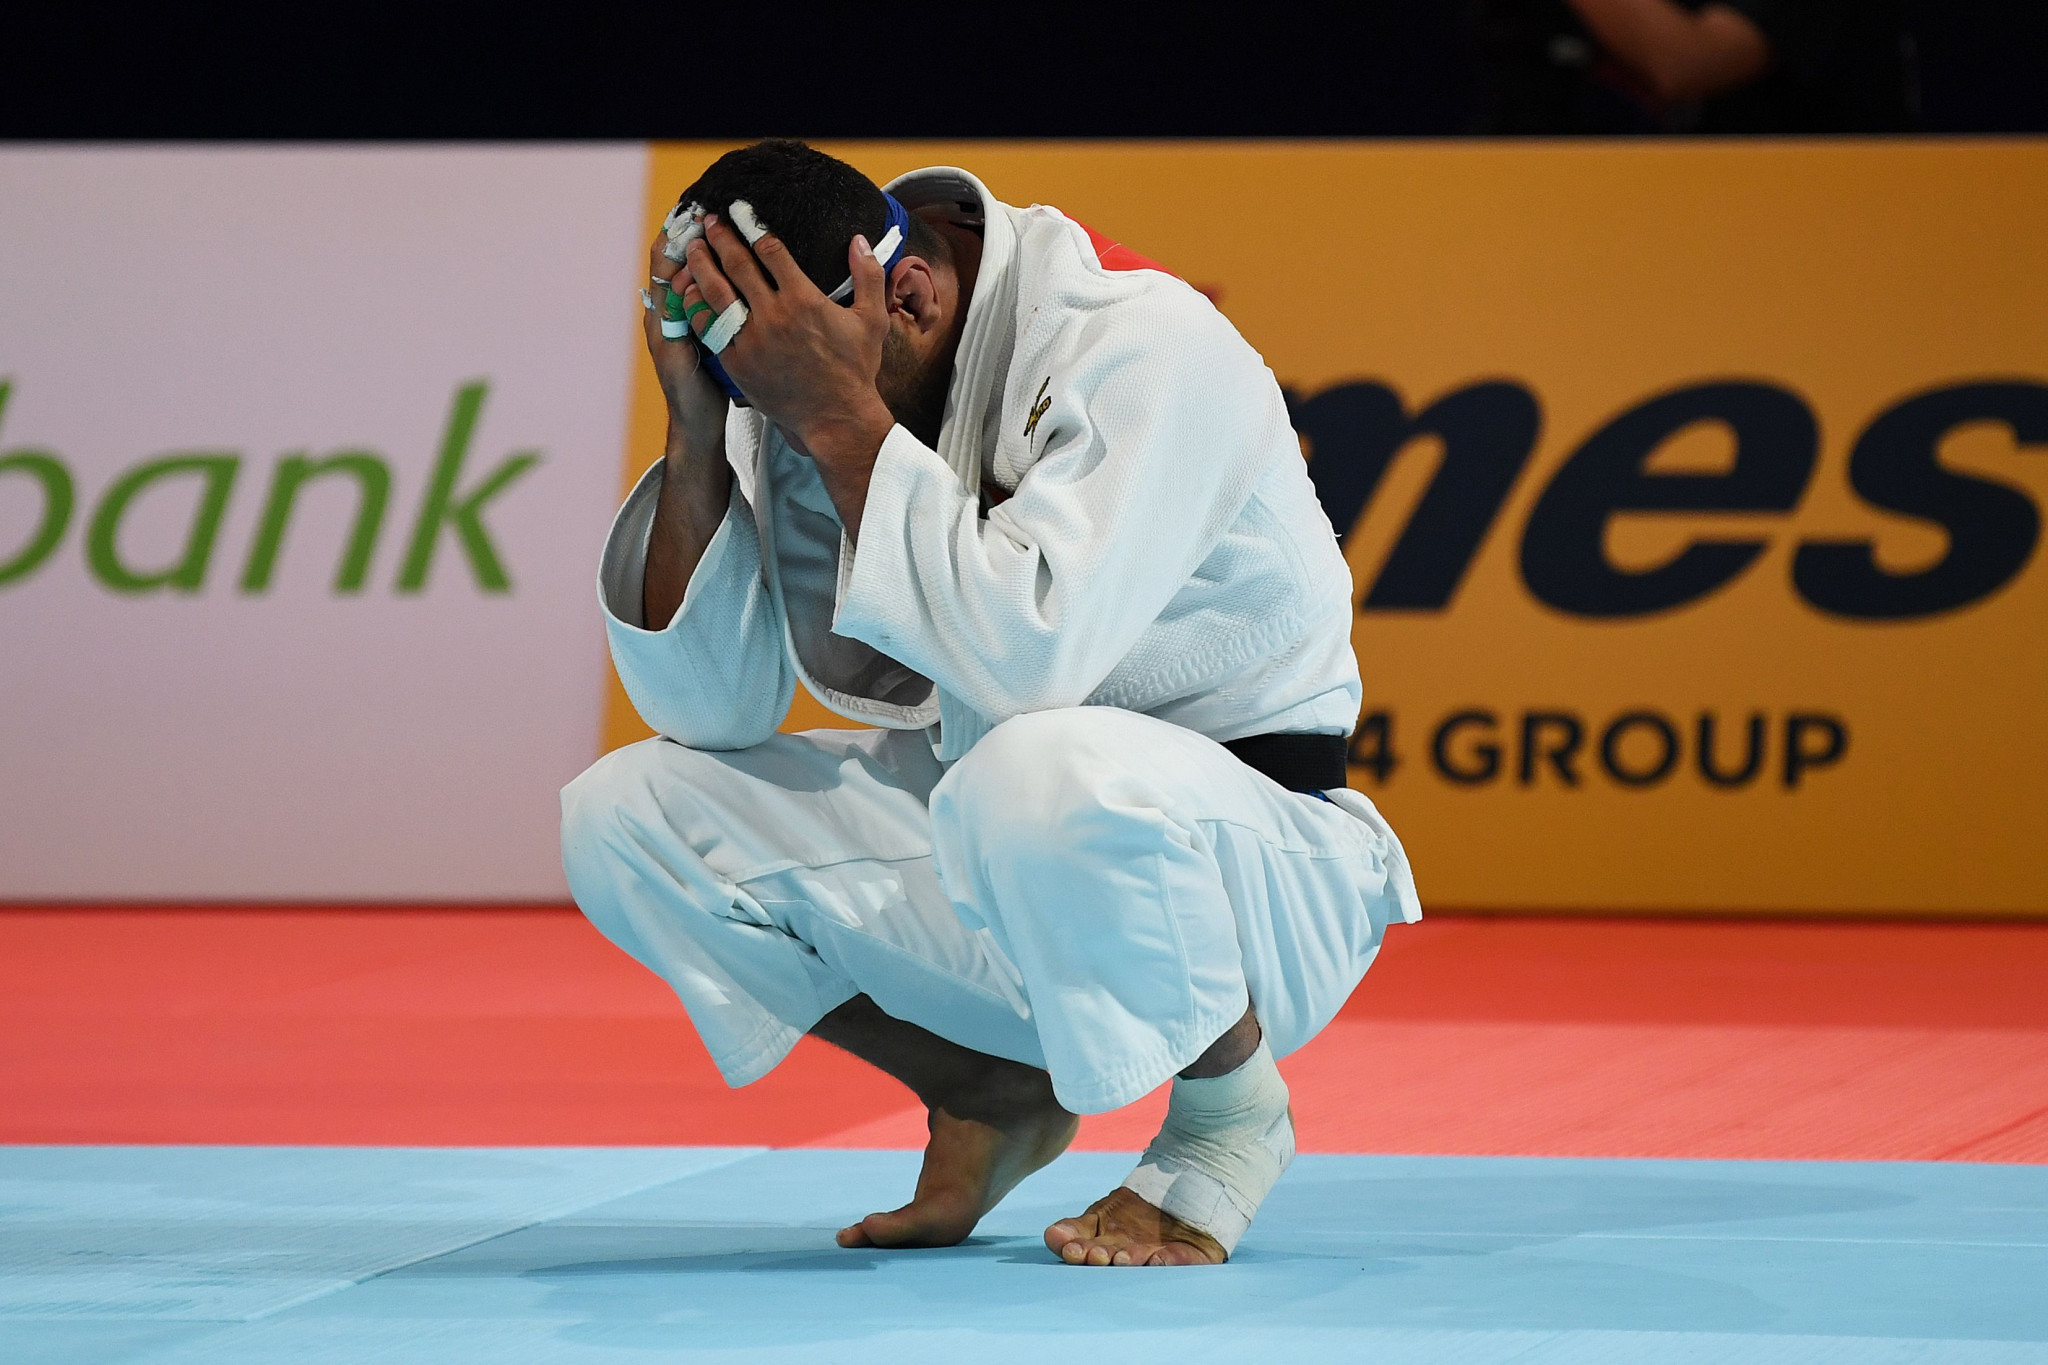 Iranian NOC President claims Mollaei would be welcomed back despite judoka's safety fears